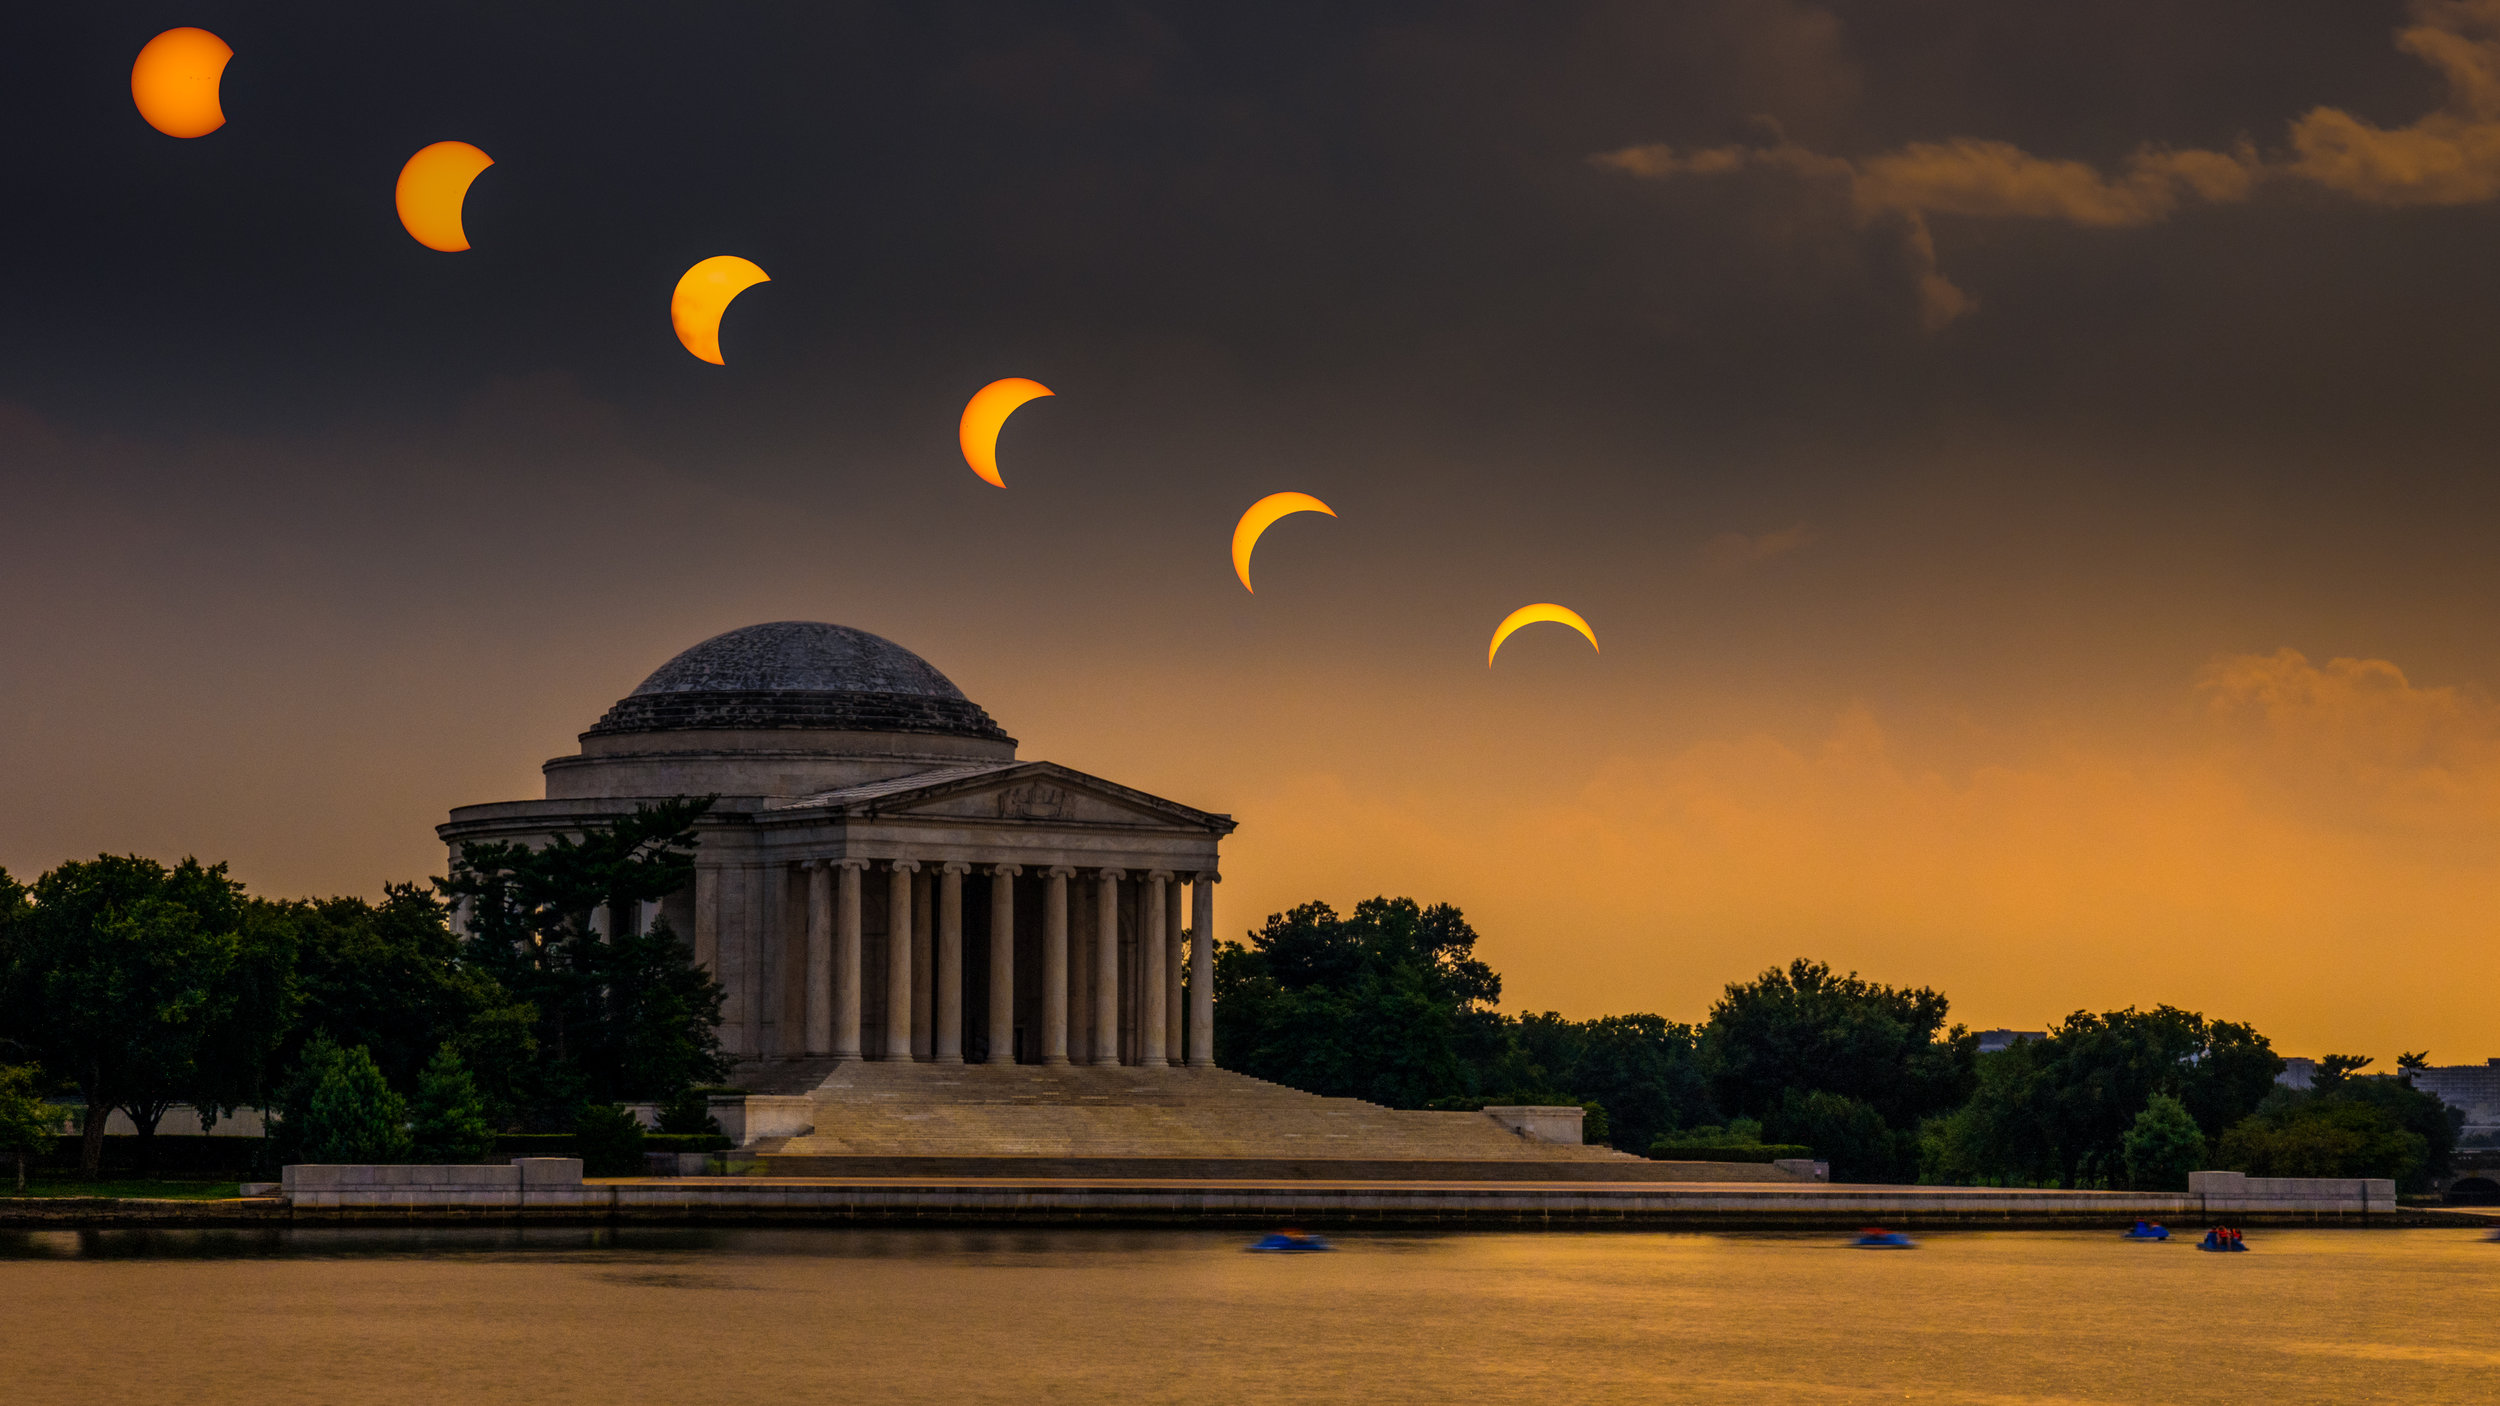 The final composite photograph of the August 2017 solar eclipse over the Jefferson Memorial.